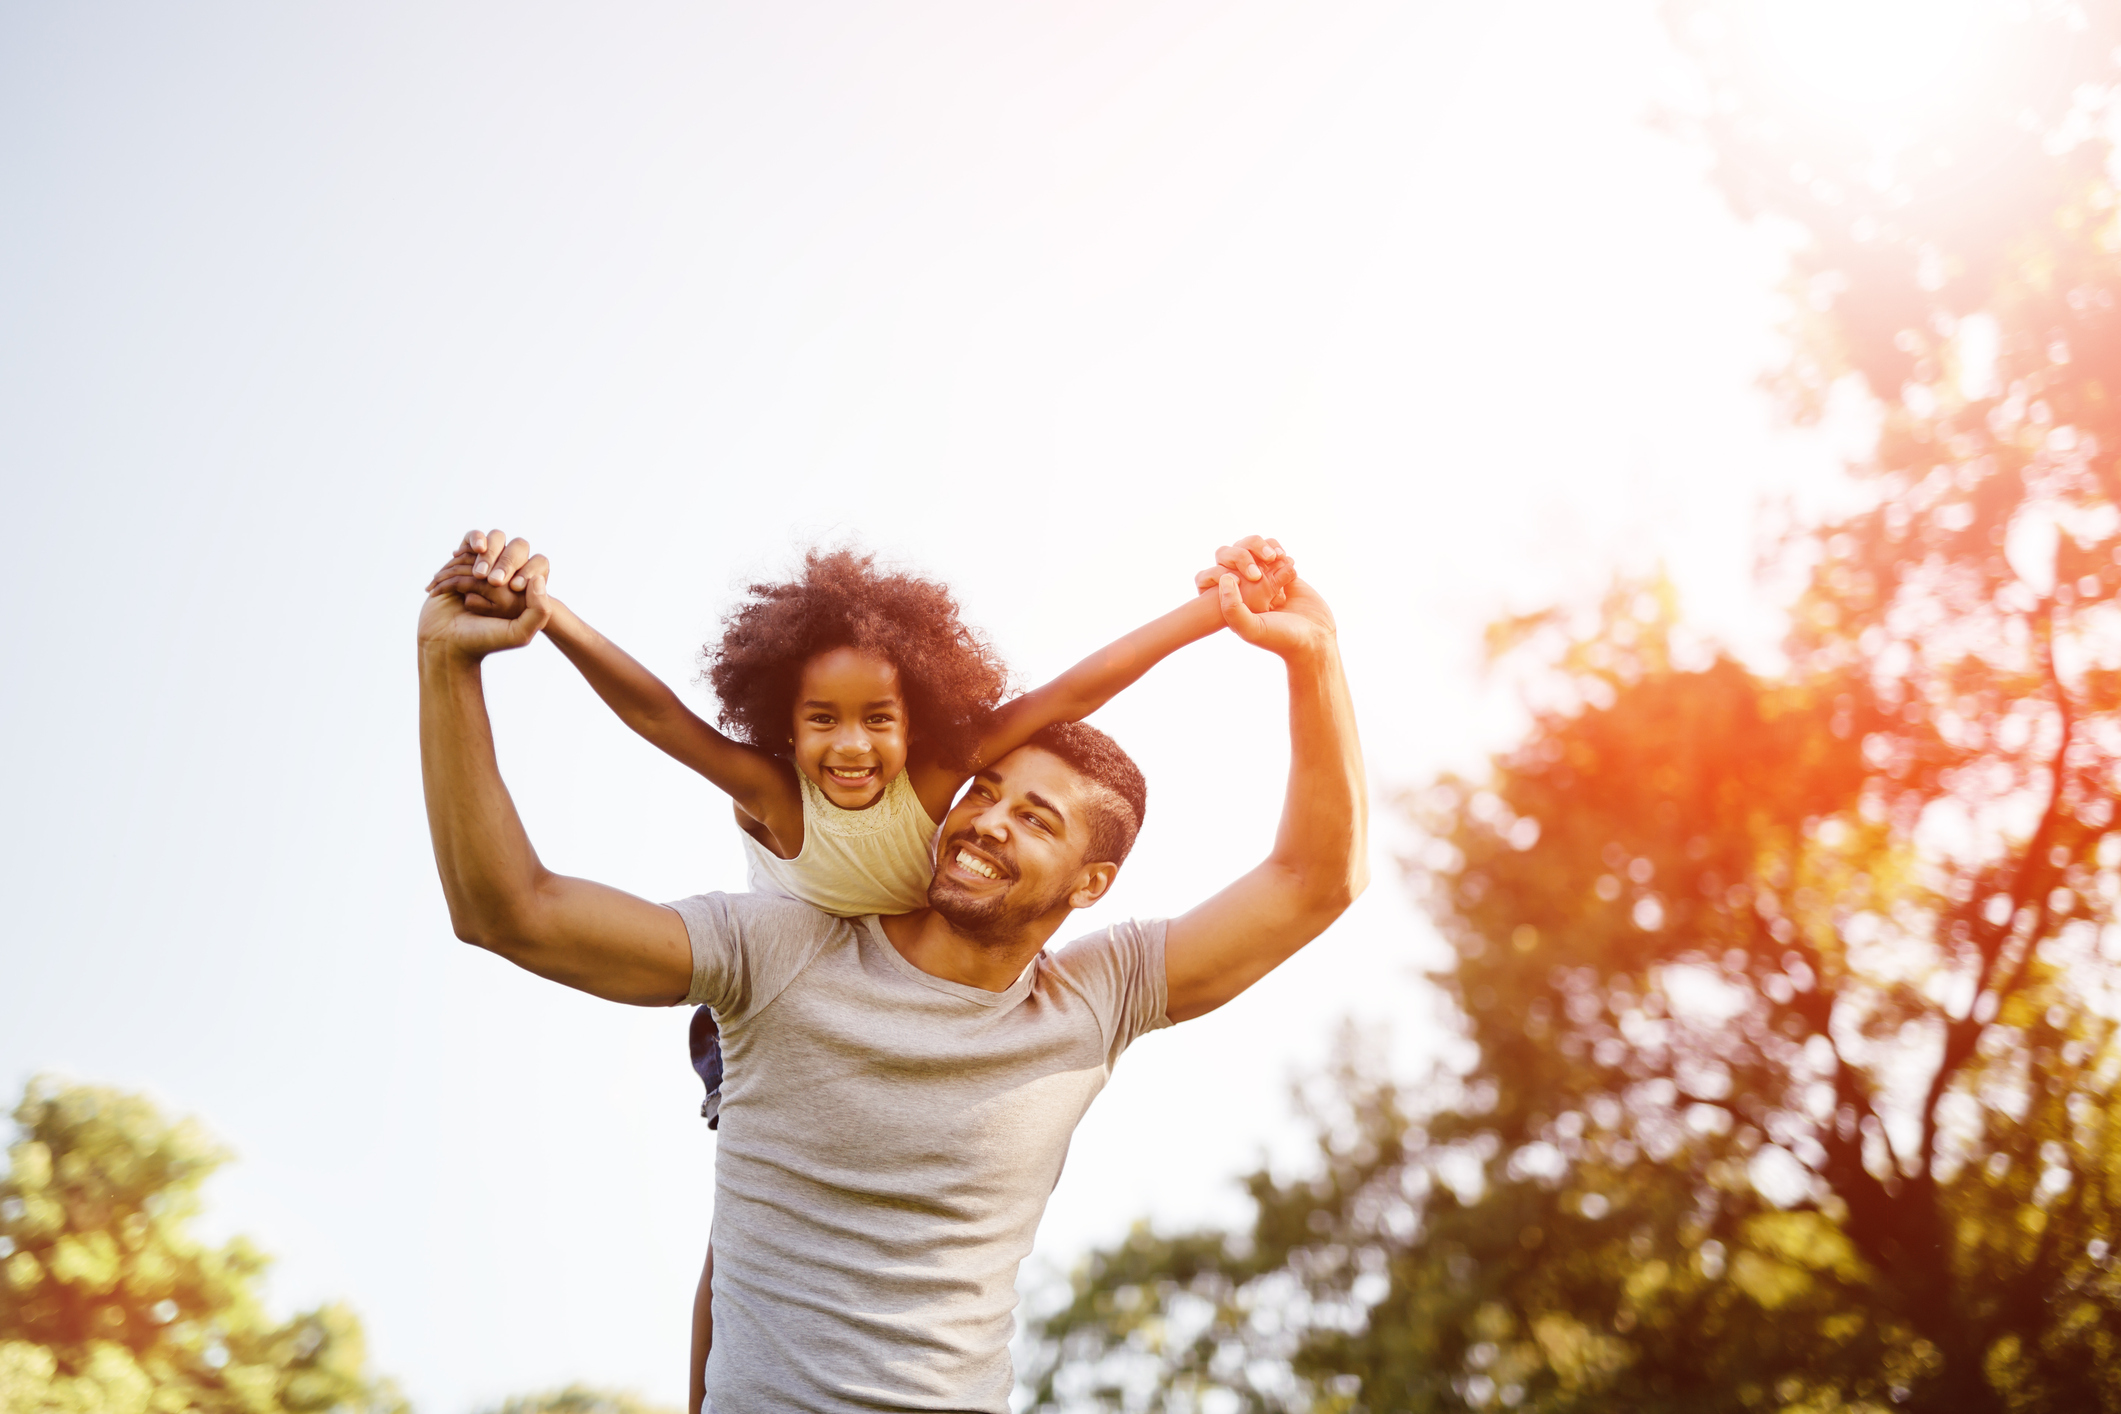 Add more joy to your parenting journey!